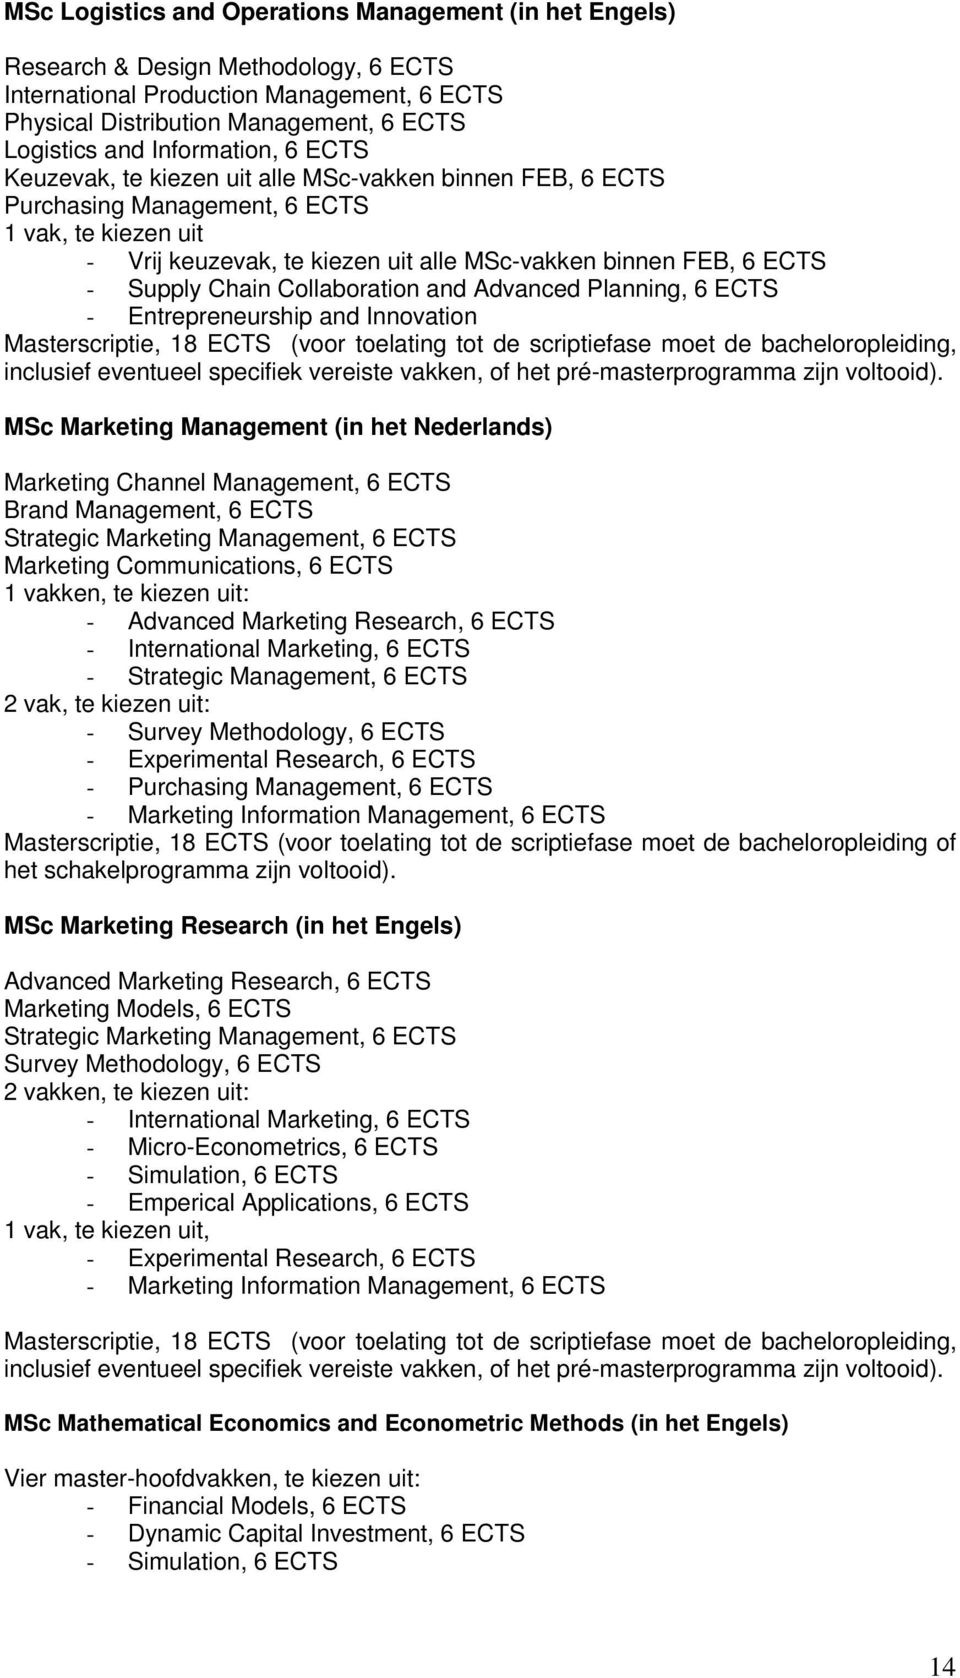 Supply Chain Collaboration and Advanced Planning, 6 ECTS - Entrepreneurship and Innovation Masterscriptie, 18 ECTS (voor toelating tot de scriptiefase moet de bacheloropleiding, inclusief eventueel